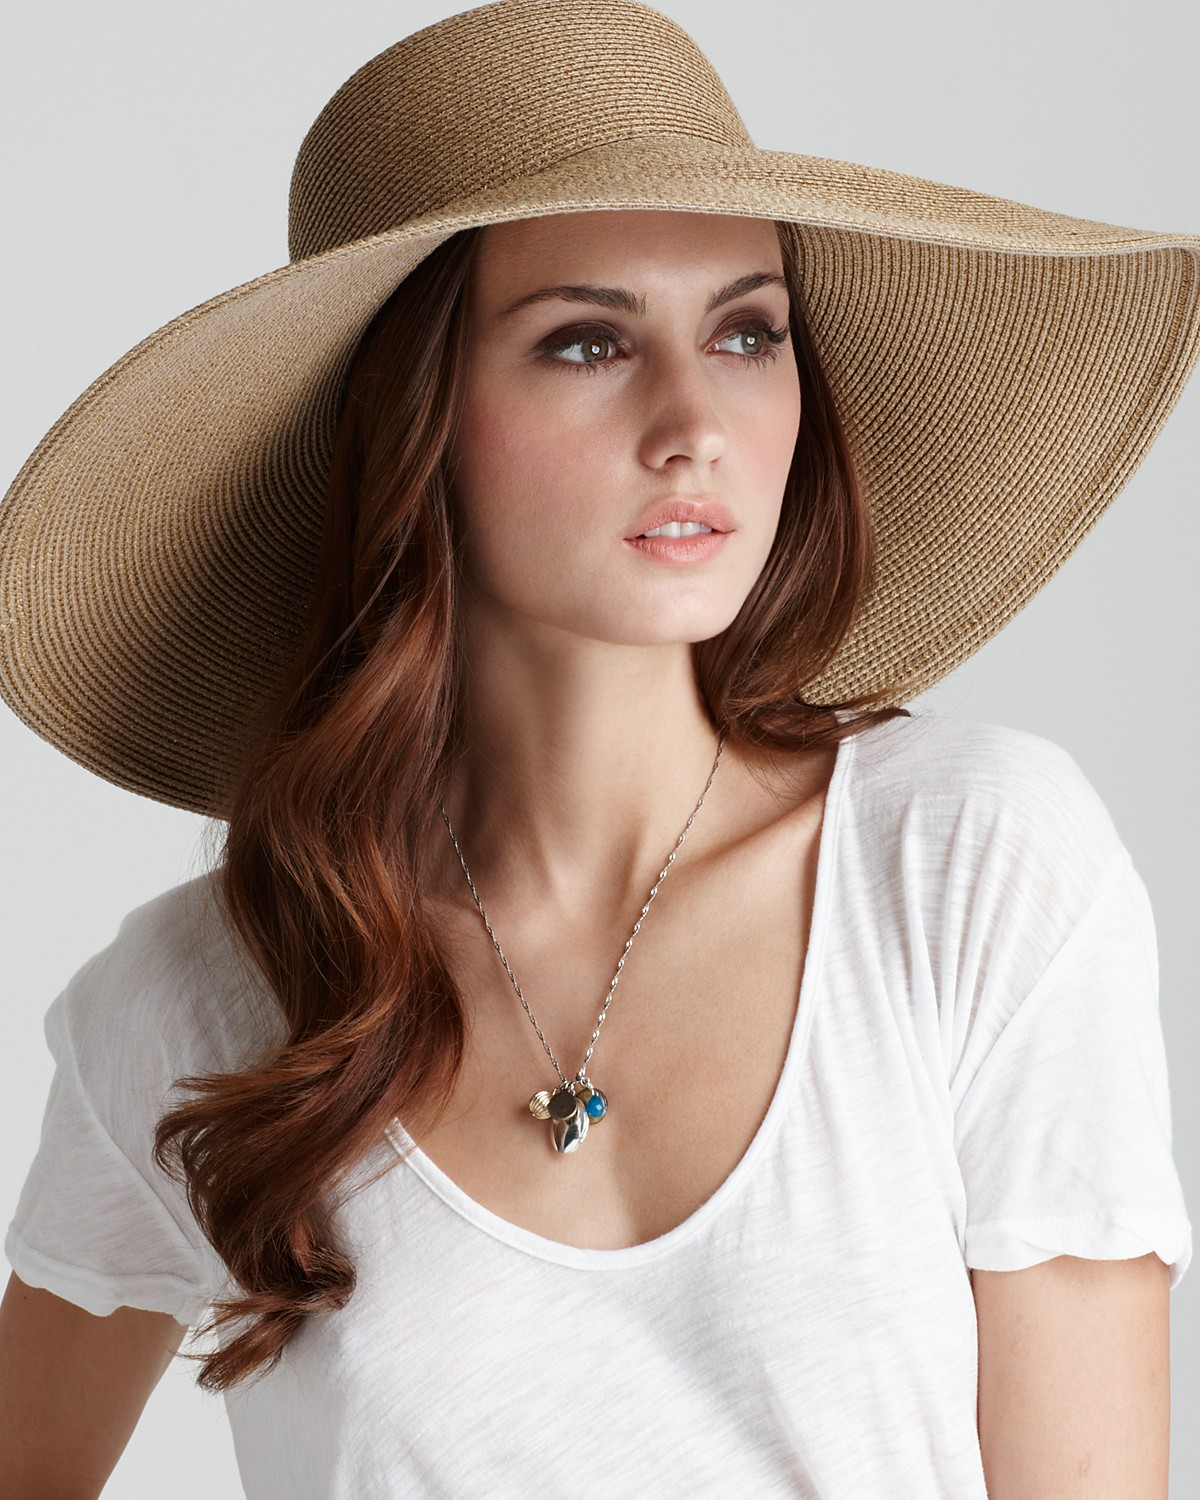 Cheap Sun Hats, Buy Directly from China Suppliers Women's Sun Hat Big Bow Wide Brim Floppy Summer Hats For Women Beach Panama Straw Bucket Hat Sun Protection Visor Femme Cap Enjoy Free Shipping Worldwide! Limited Time Sale Easy Return.5/5(3).